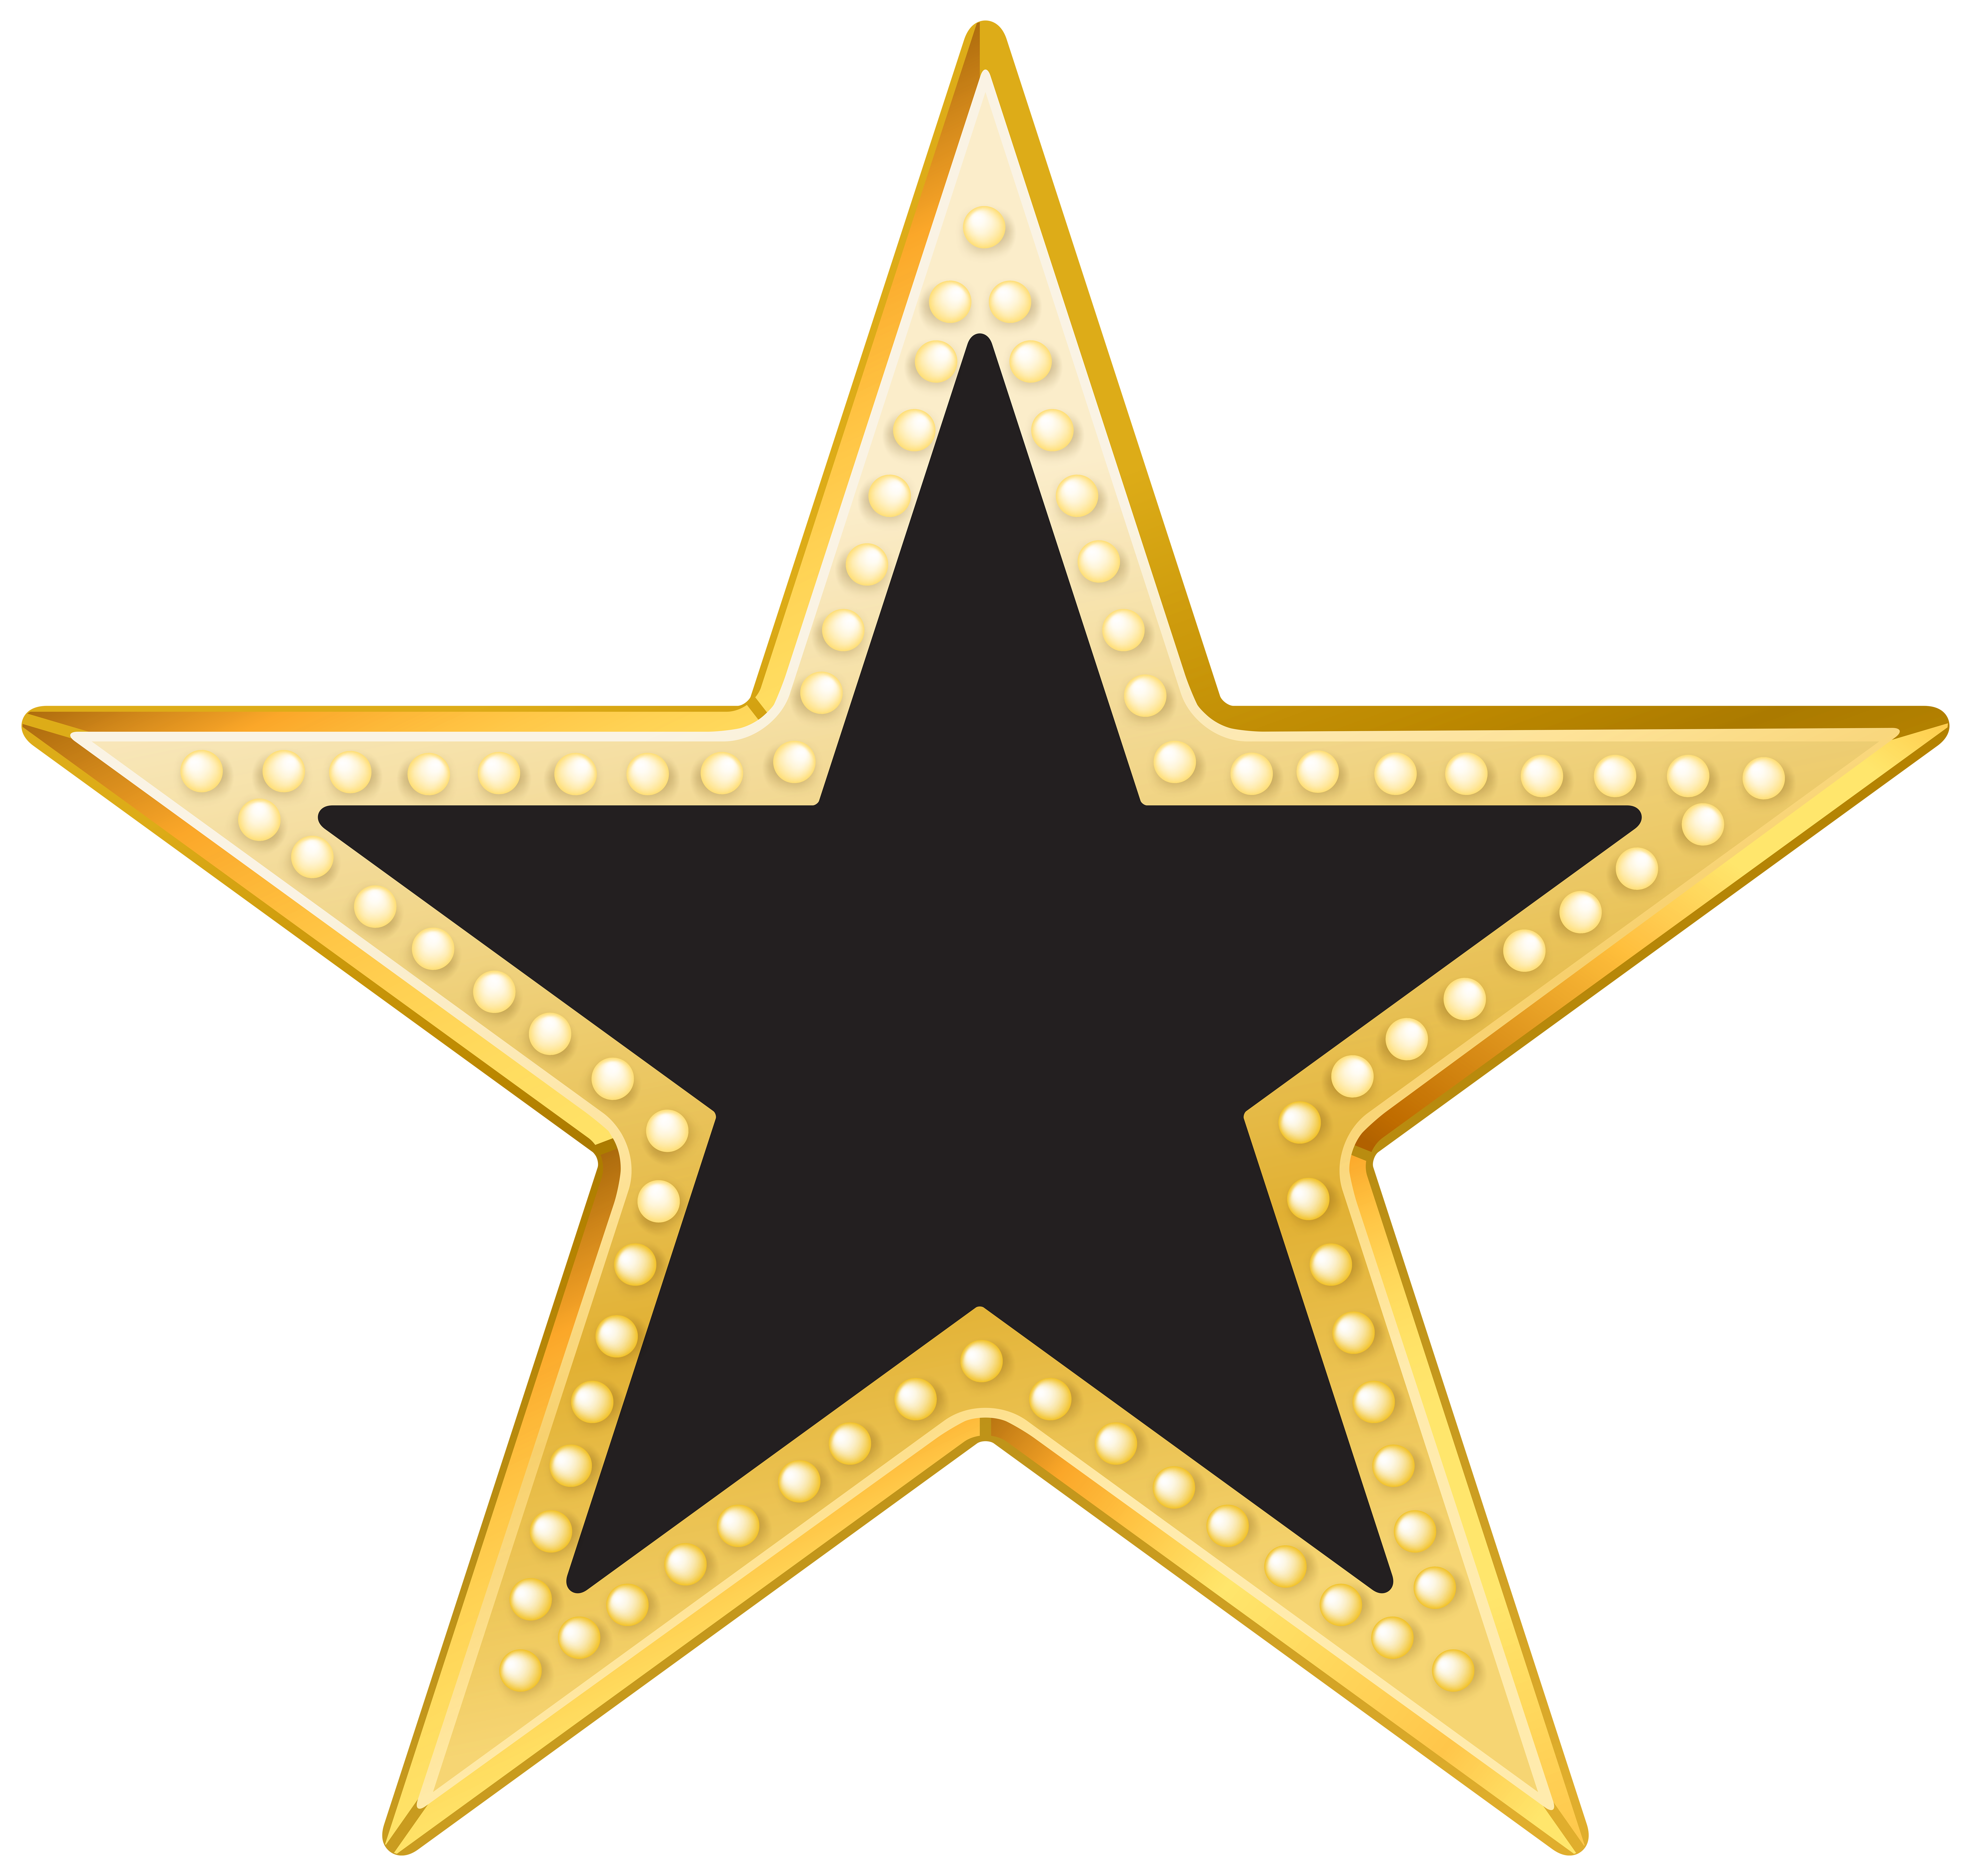 Black And Gold Hd Png - Gold and Black Star PNG Transparent Clip Art Image | Gallery ...